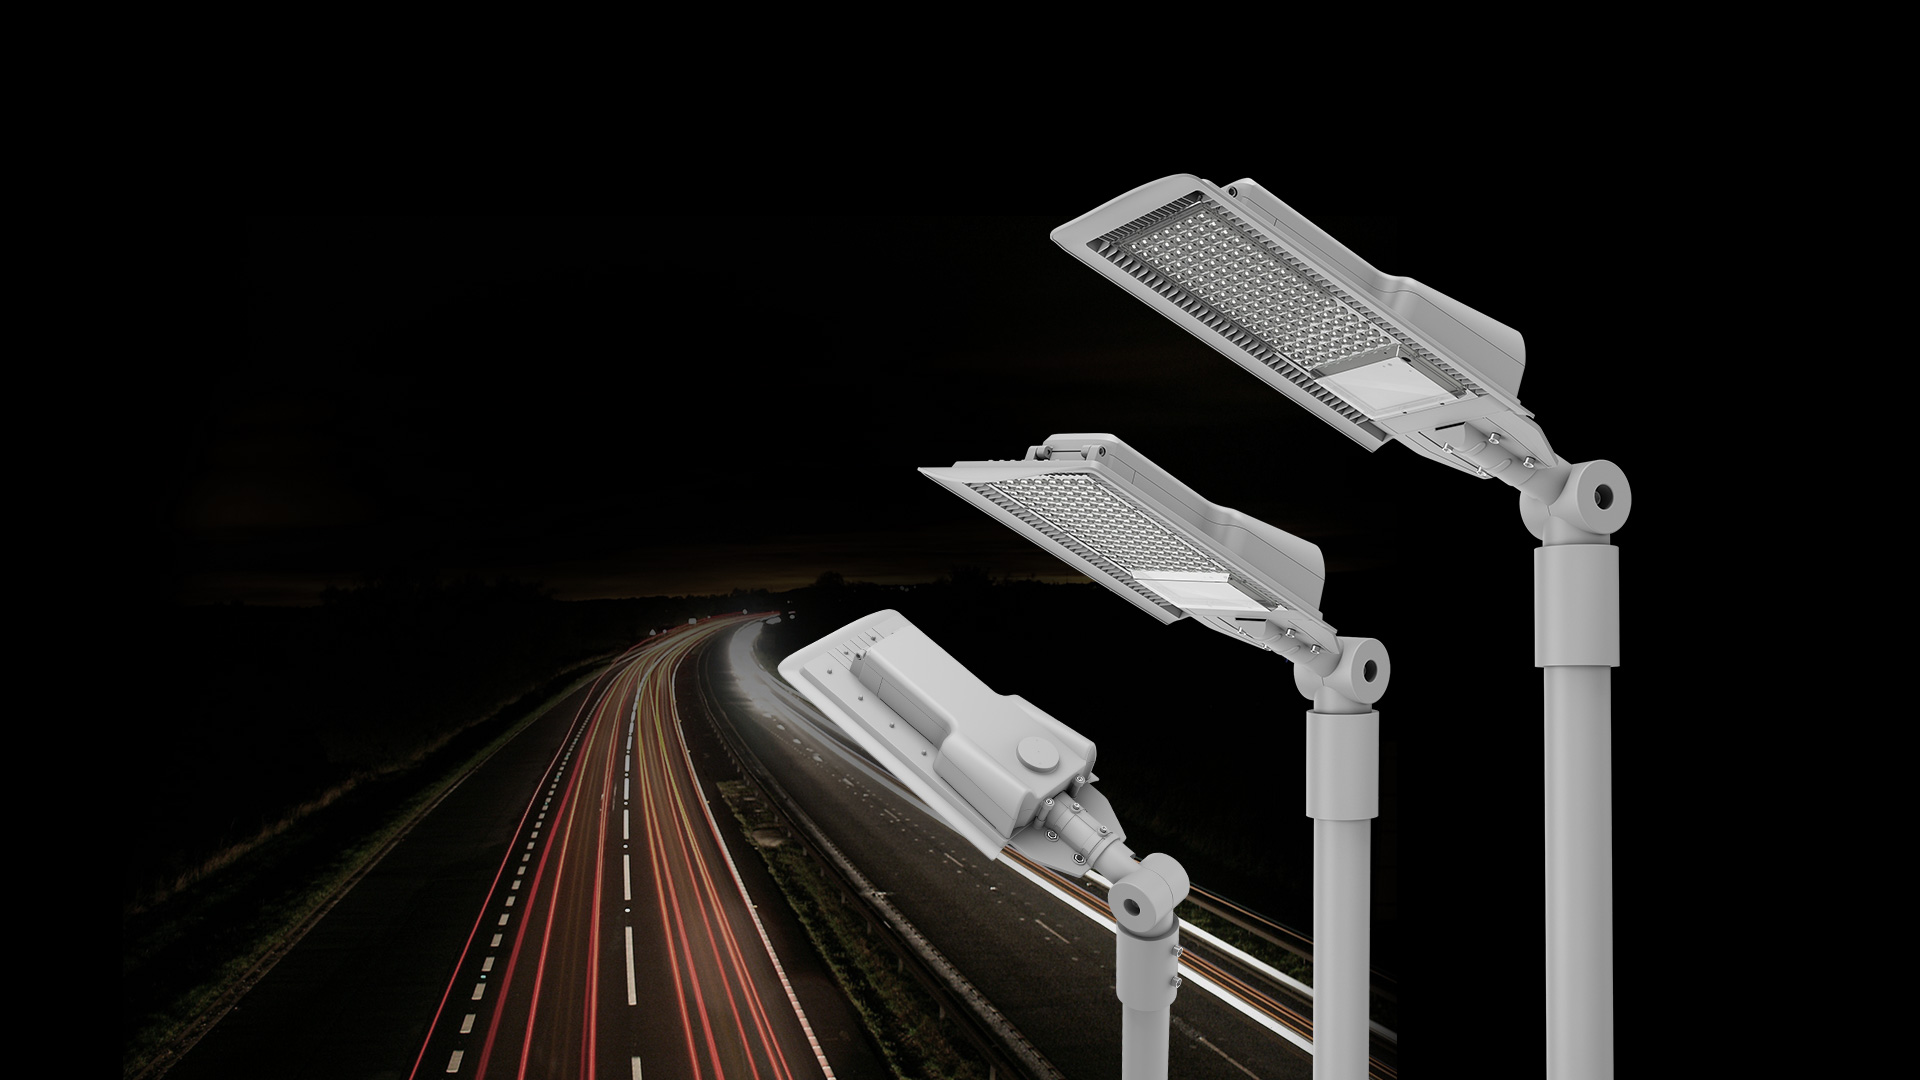 Liper led streetlight